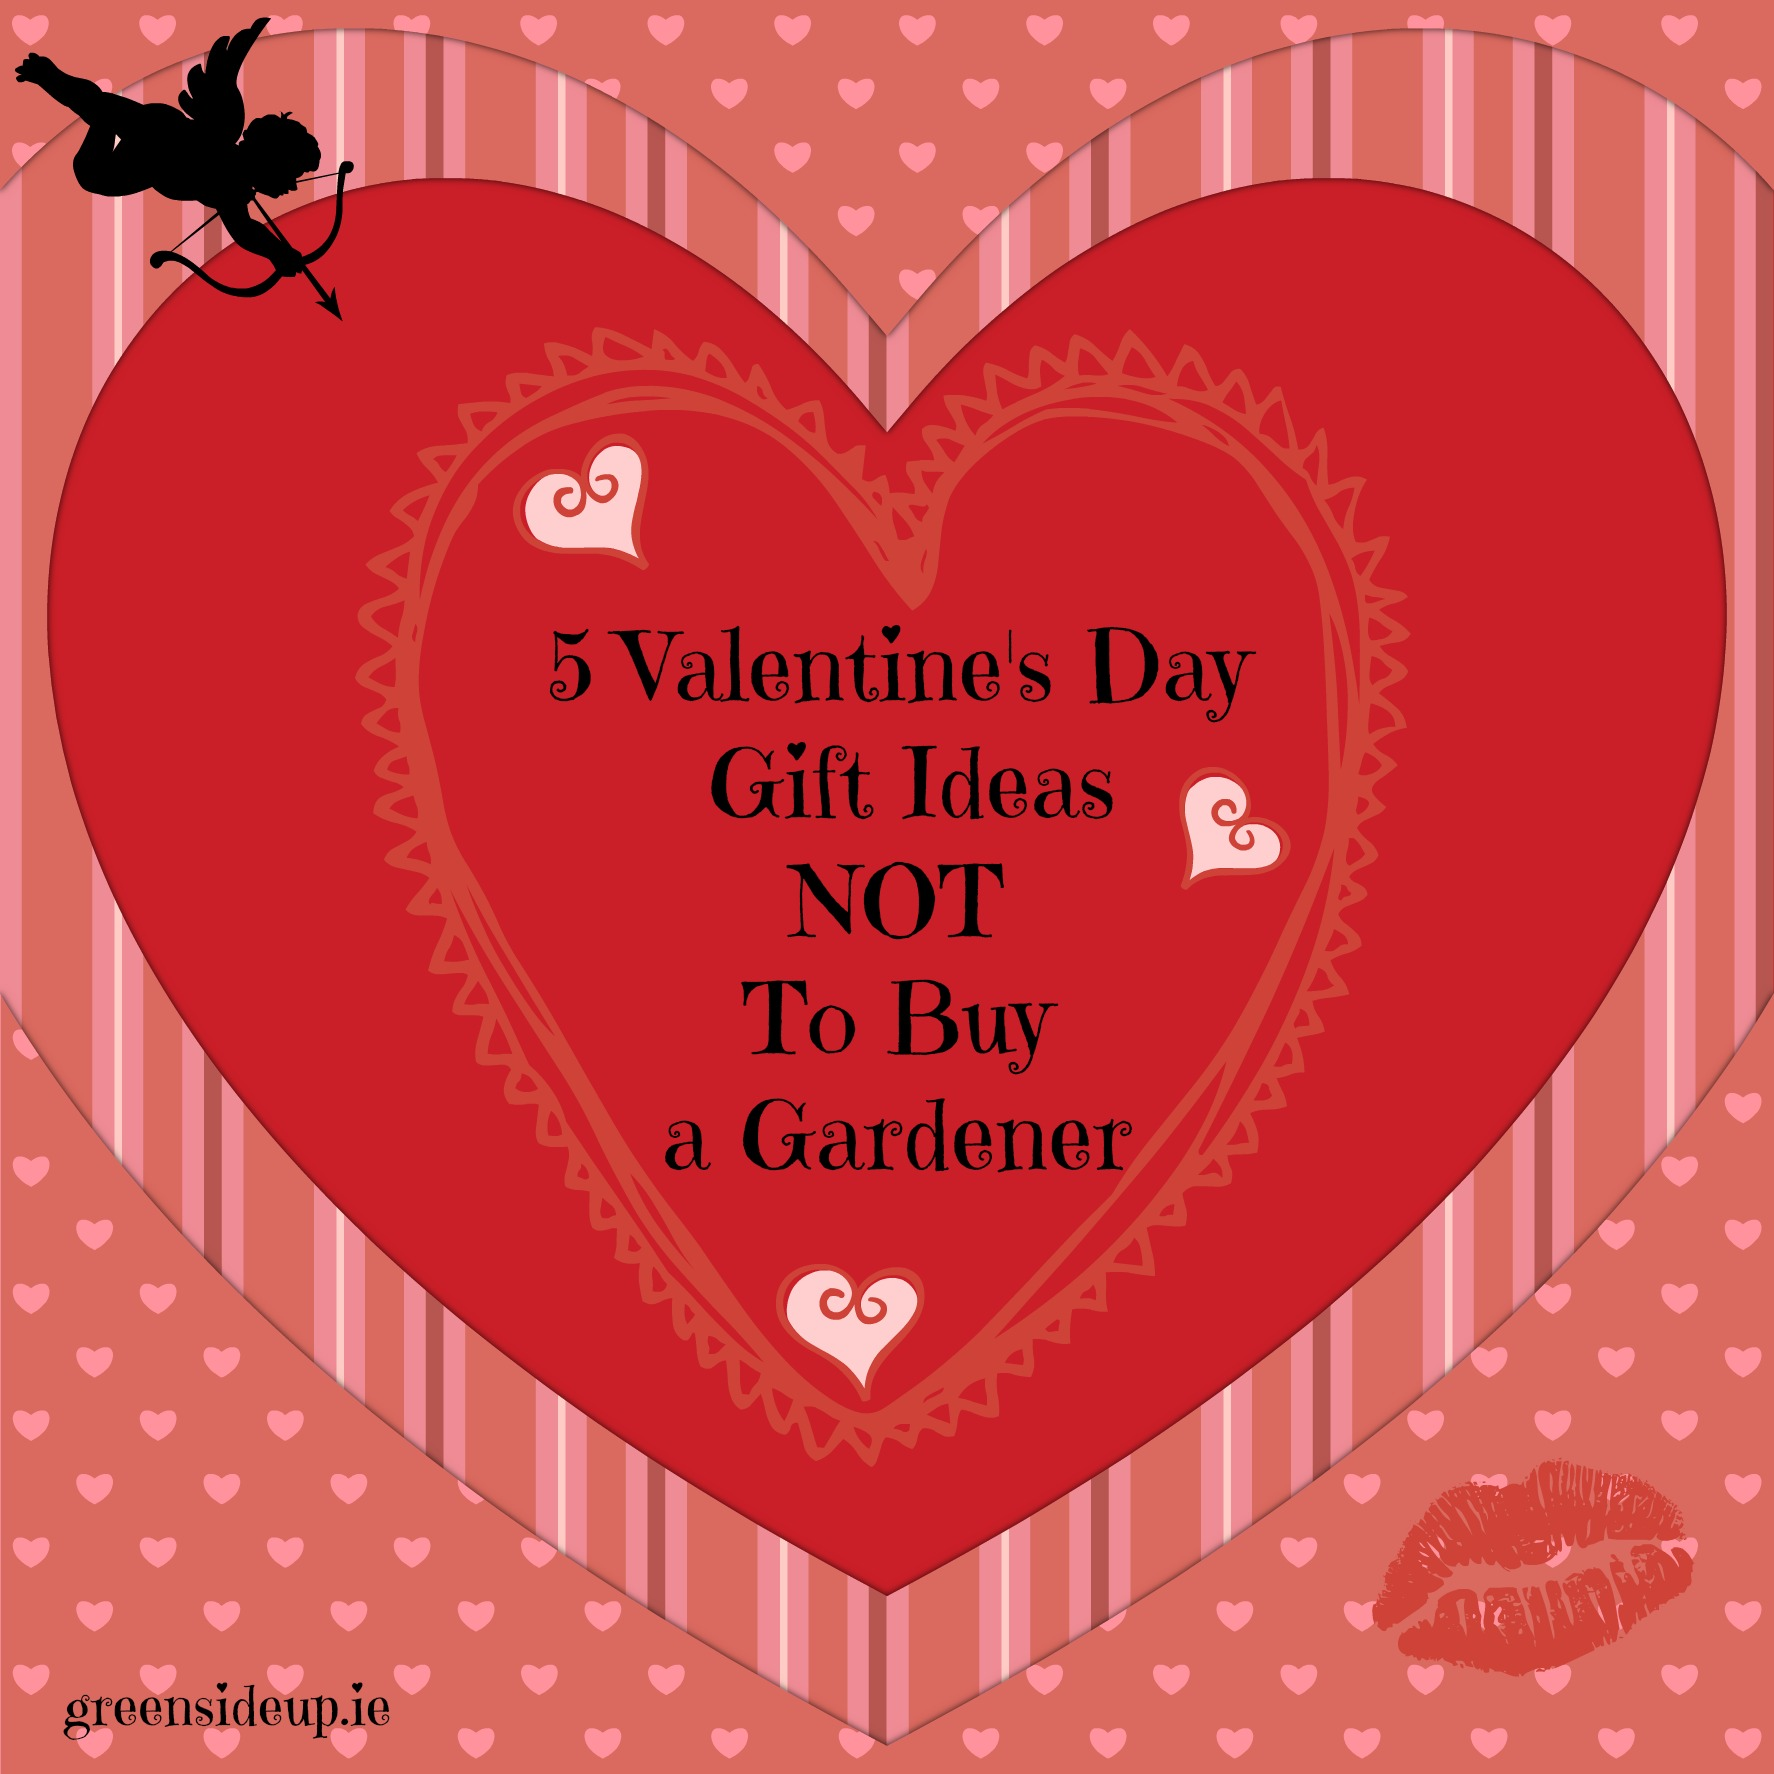 5 valentines day gift ideas not to by a gardenergreenside up for Valentines day trip ideas